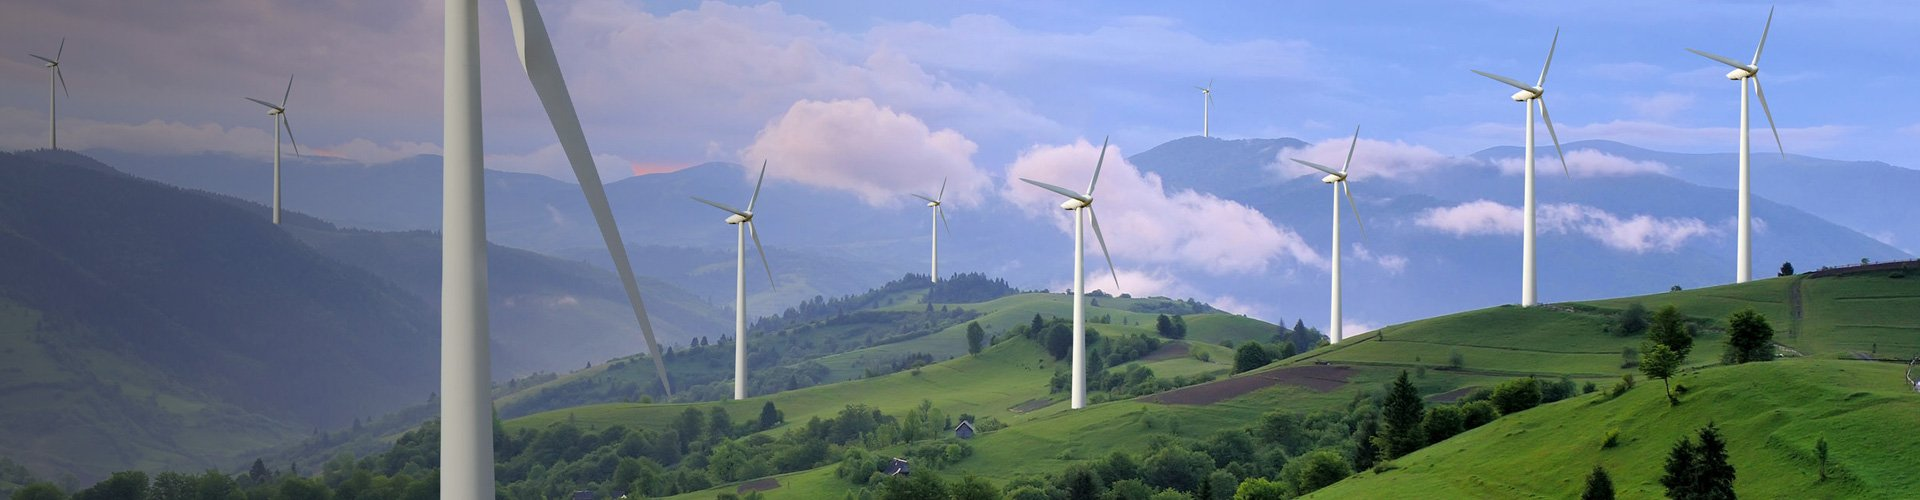 wind-parks-RESinvestments-01